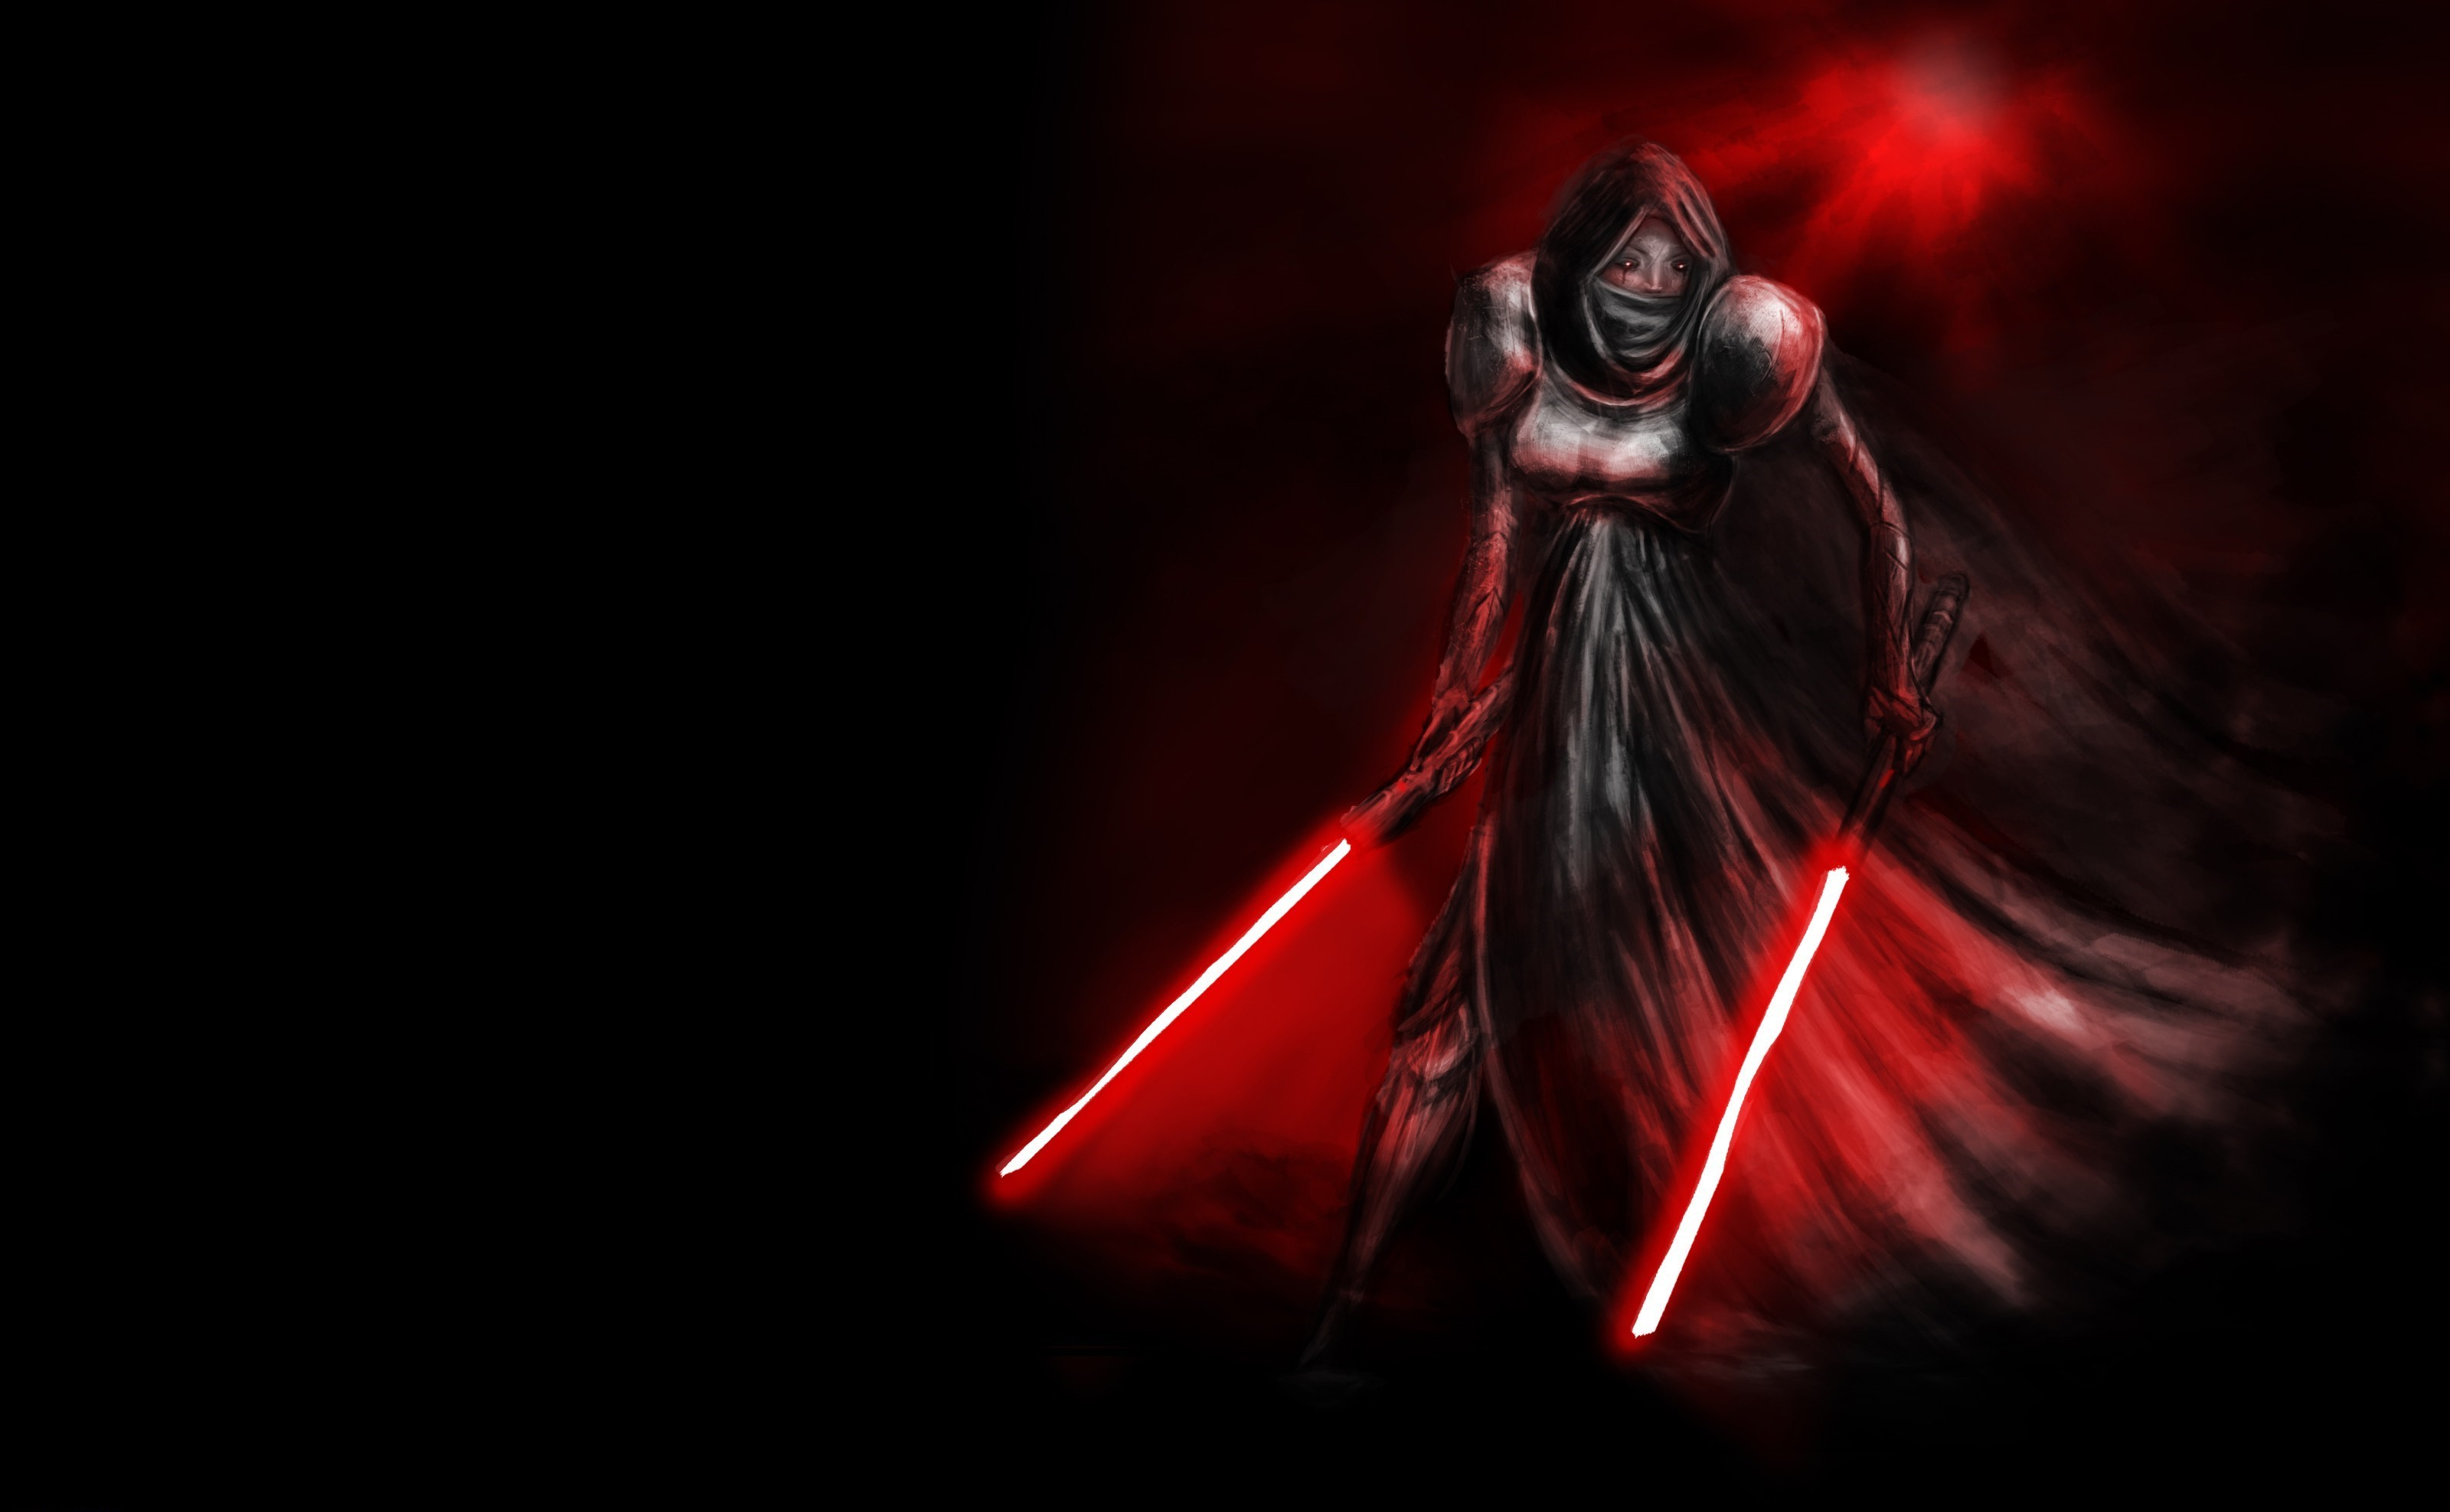 Star Wars Lightsaber Background Hd Wallpapers backgrounds 3200x1975